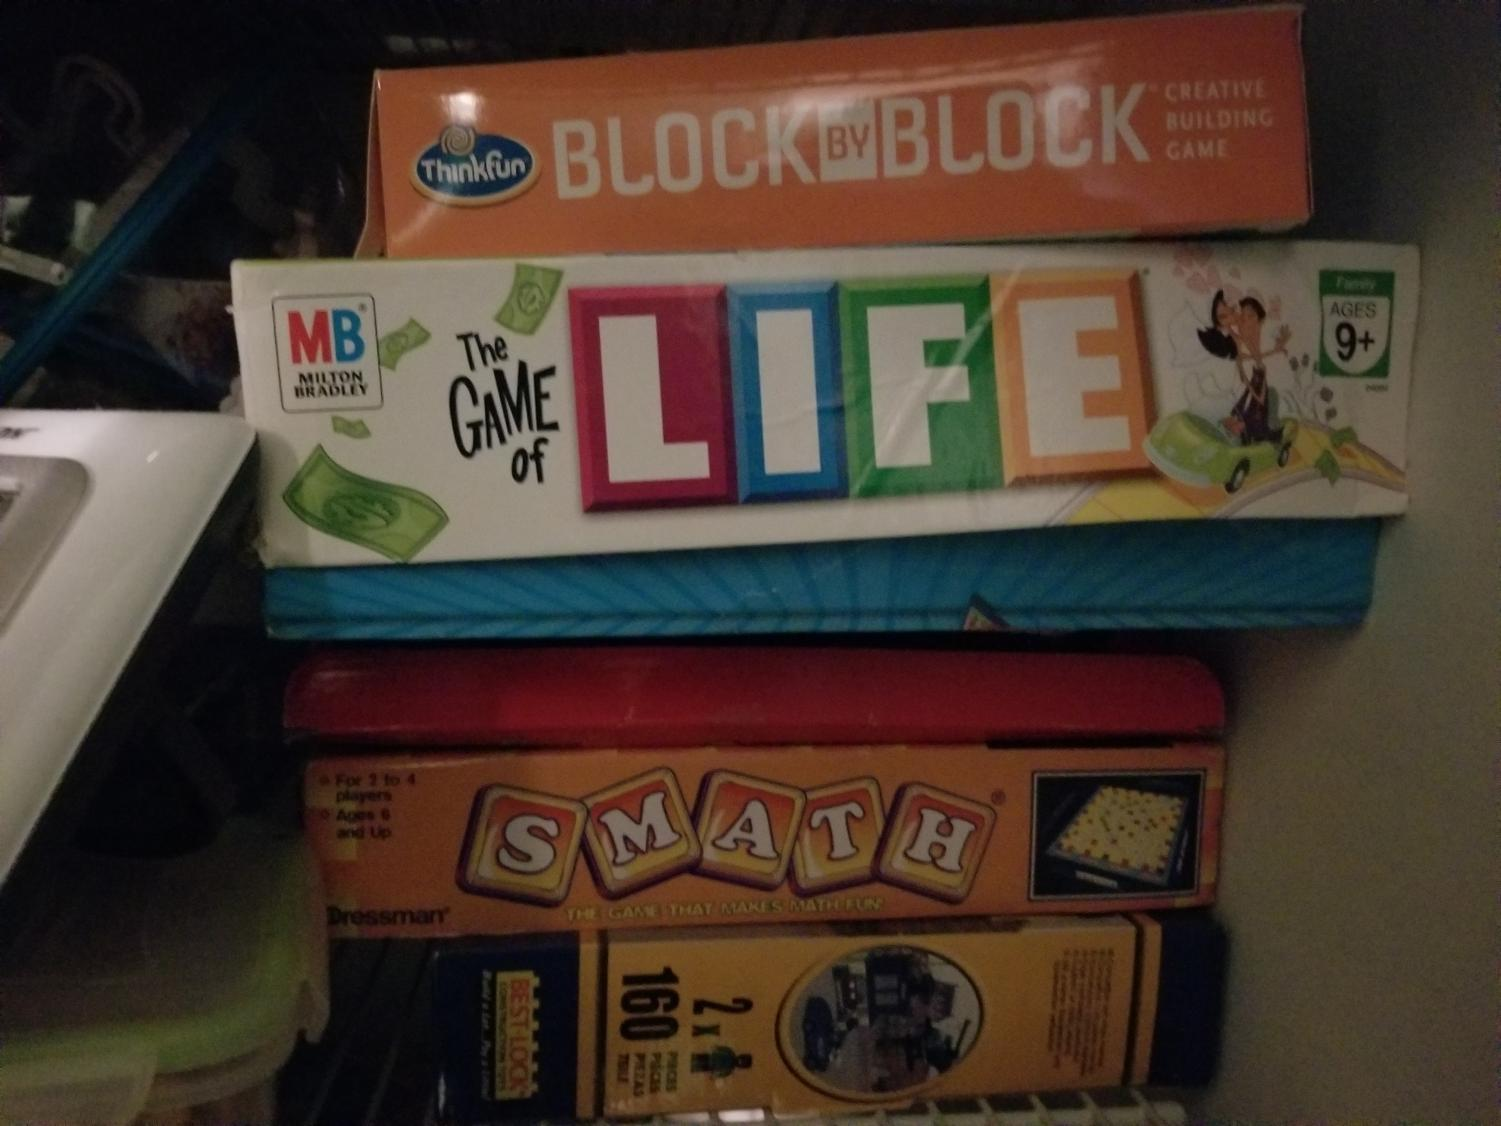 Board games provide loads of fun for the Game On club members. Popular games include Operation, Boggle and Trivial Pursuit. These are games of skill that students enjoy.